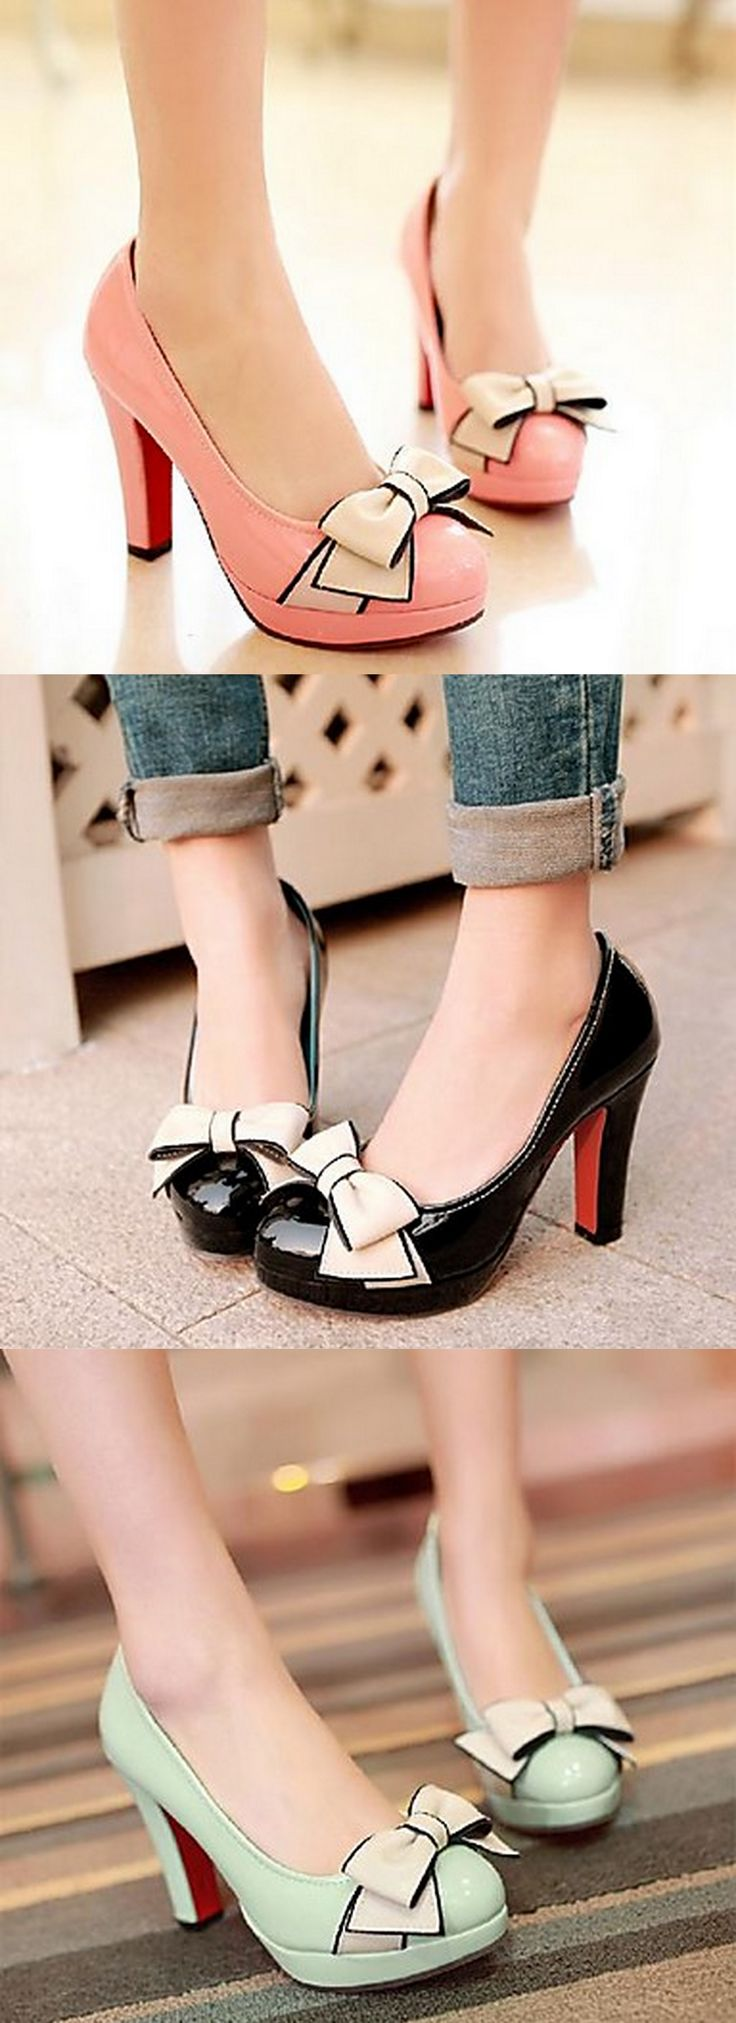 Round Toe Stiletto Heels with Bowknot